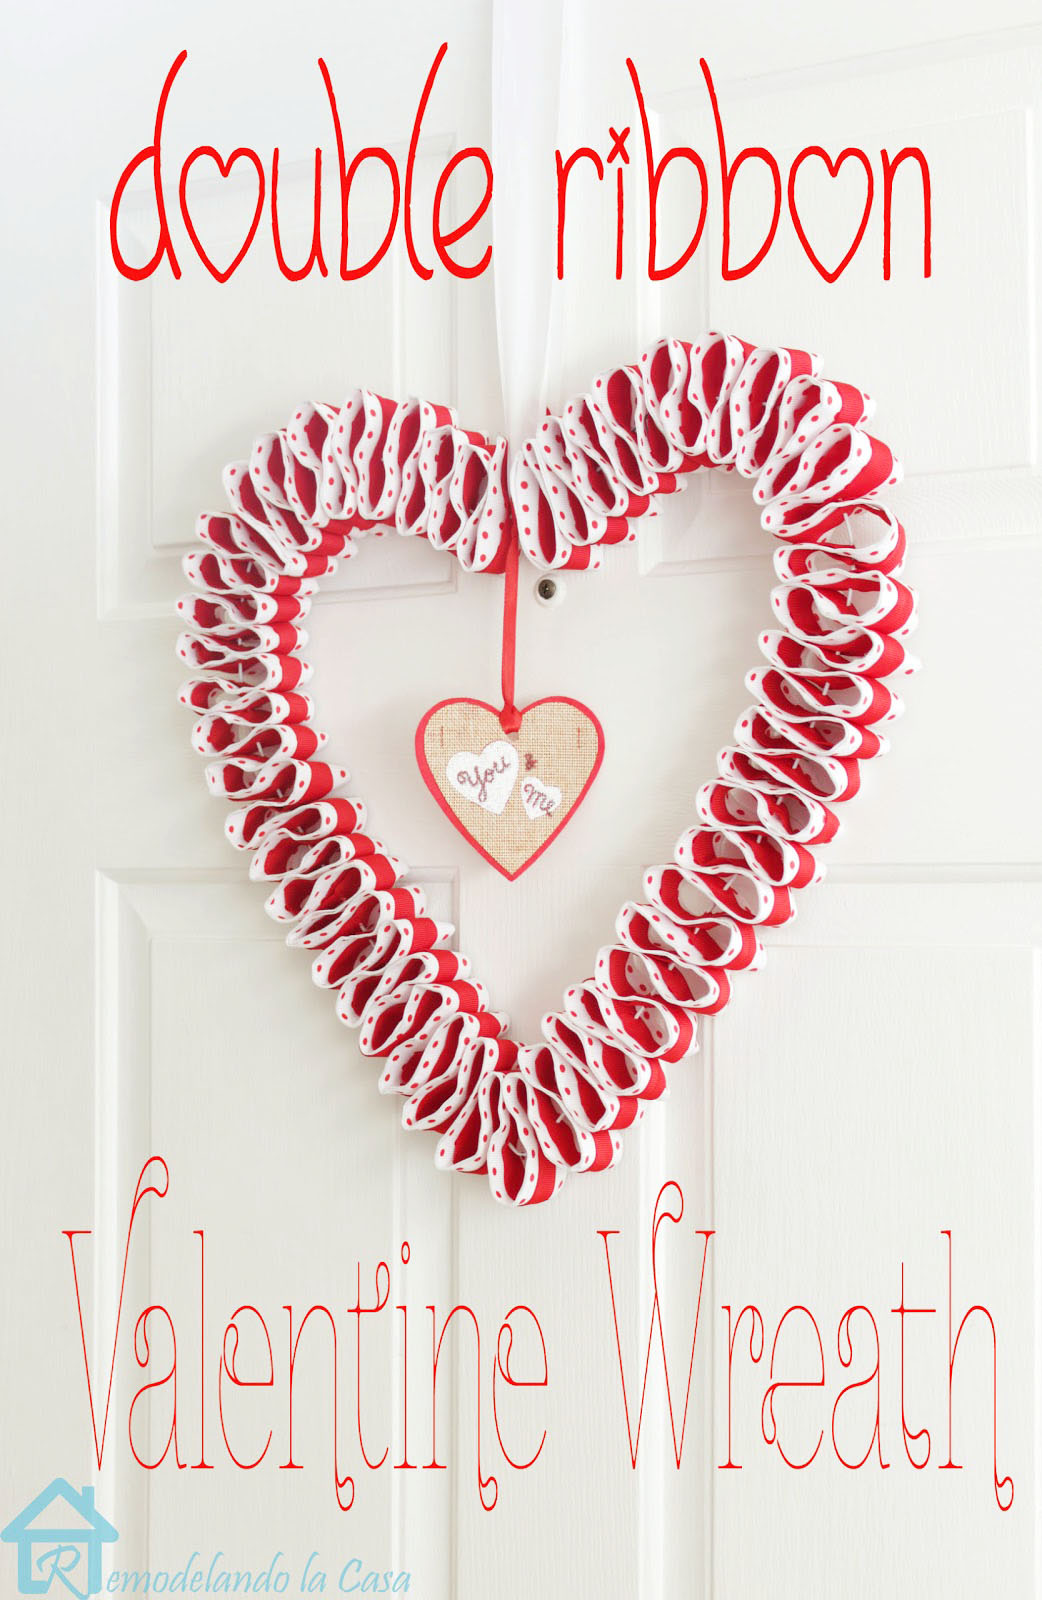 diy Ribbon heart wreath on door for valentines